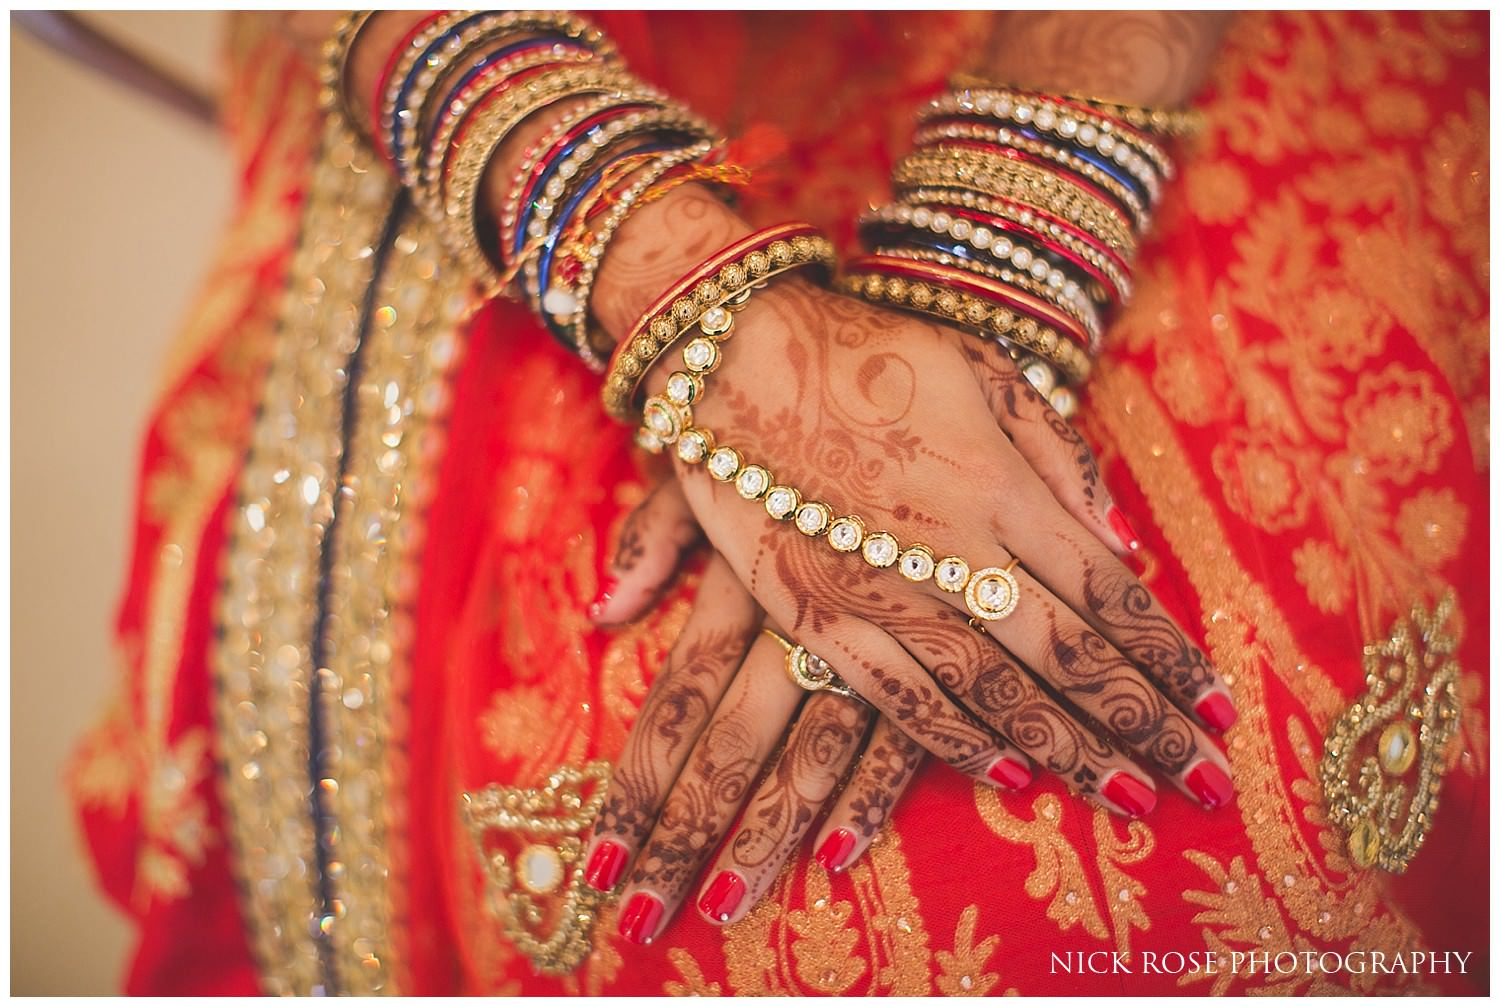 Indian bride with hands crossed on lap for an East Wintergarden wedding in Canary Wharf London